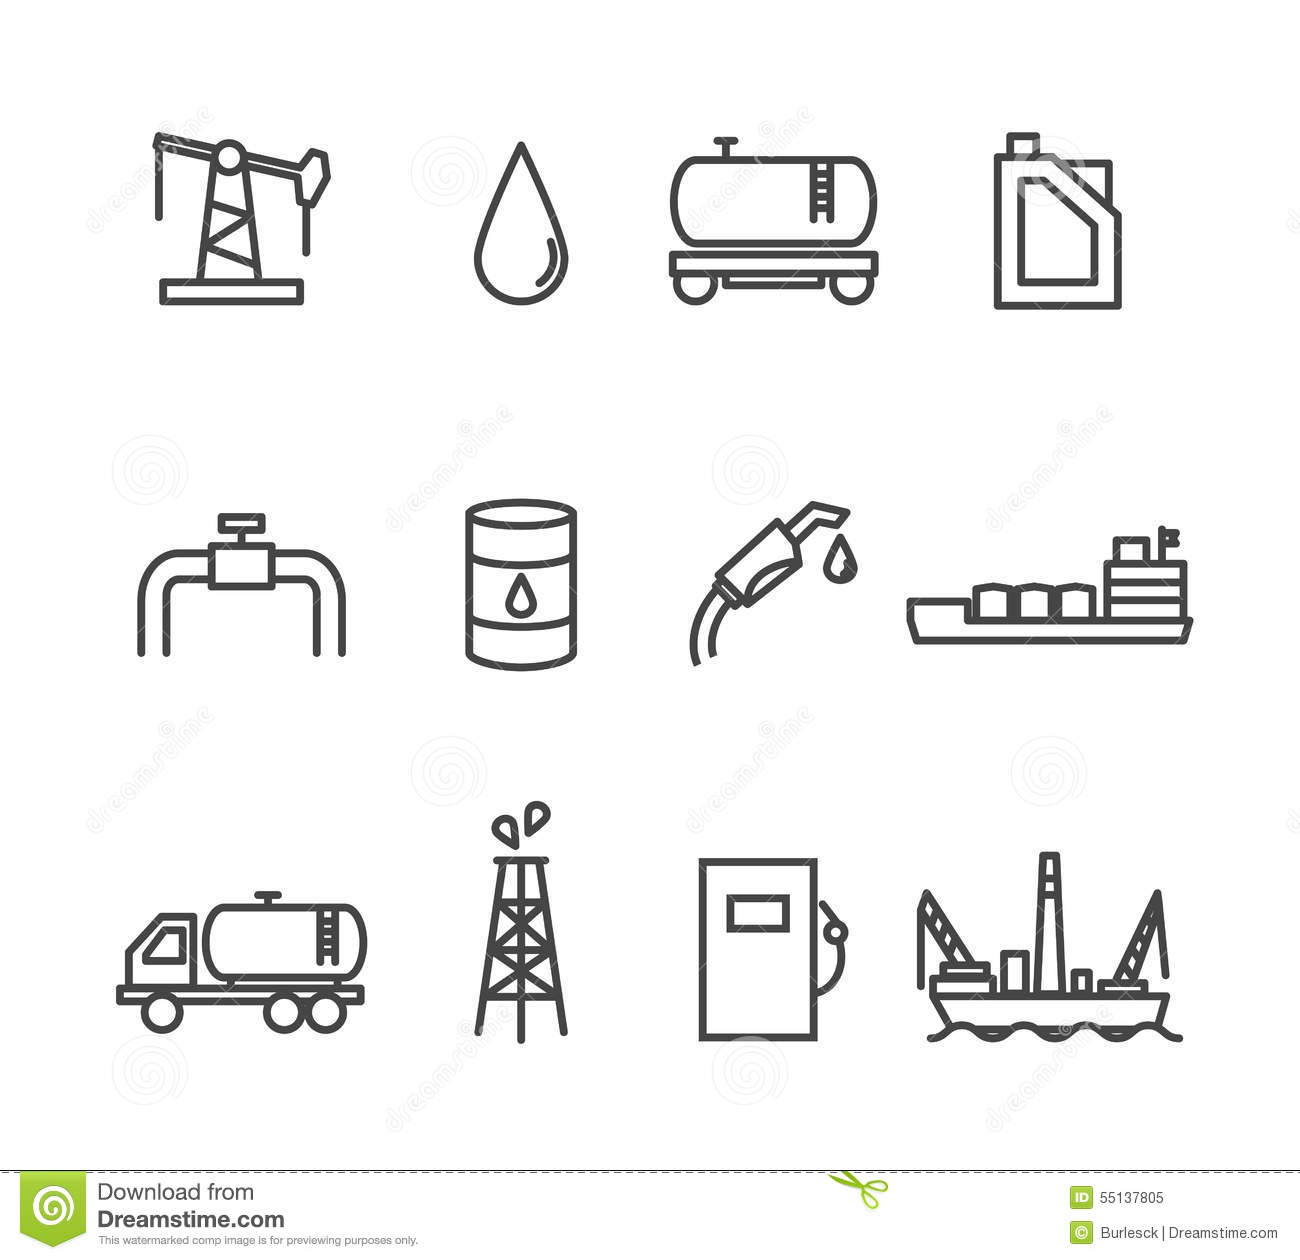 Nigeria Map Location also Search Vectors together with Set Signs Oil Gas Industry Onshore 738744346 also Oil and gas icons together with 89040 Set Of Mining Icons Vectors. on refinery outline